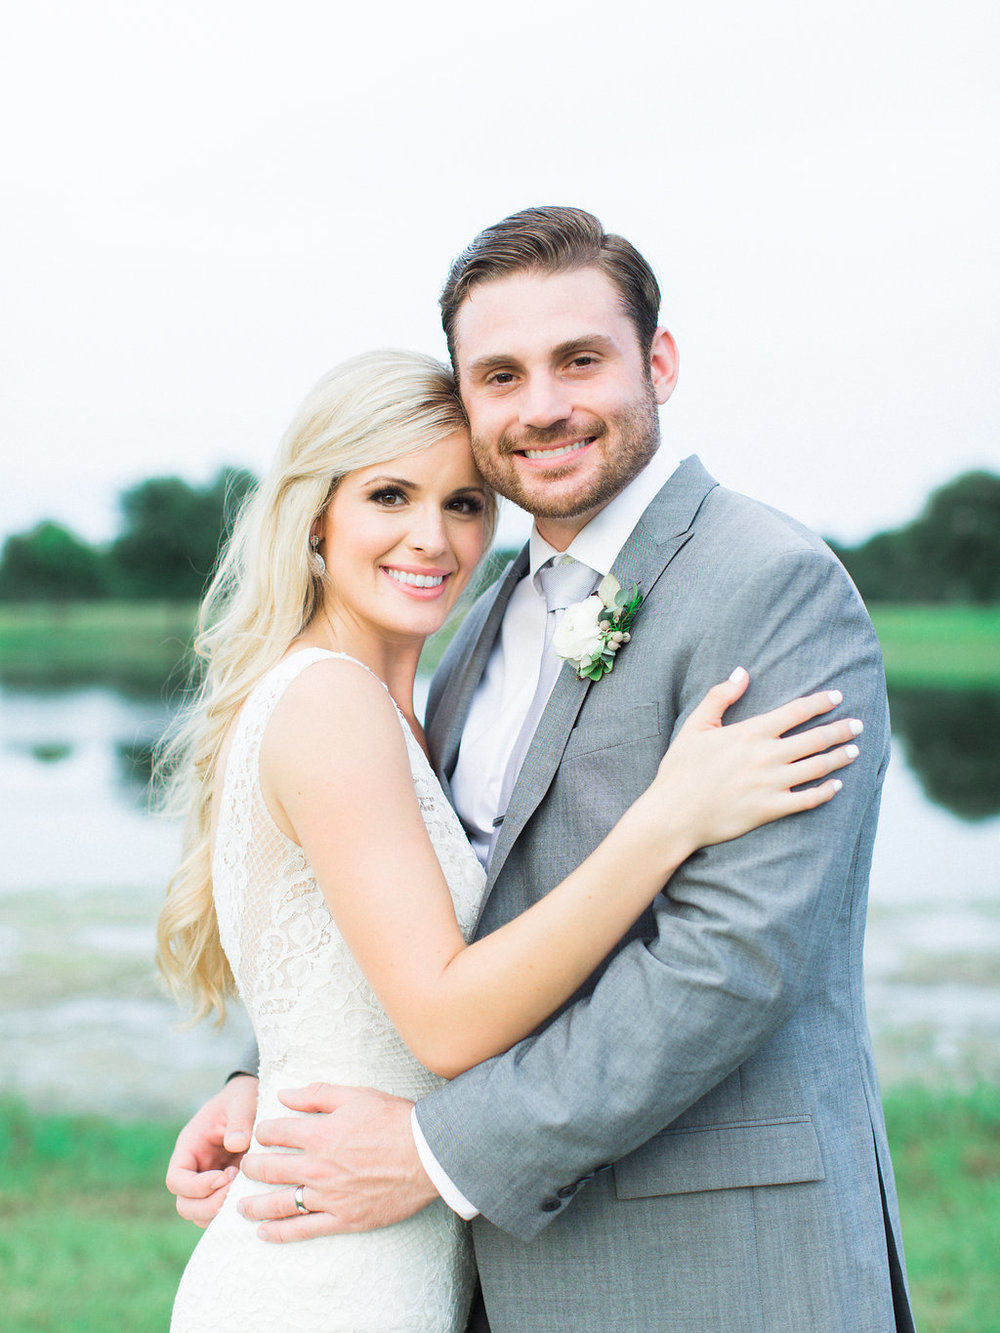 Elegant Summer Ranch Wedding - Lindsey Brunk